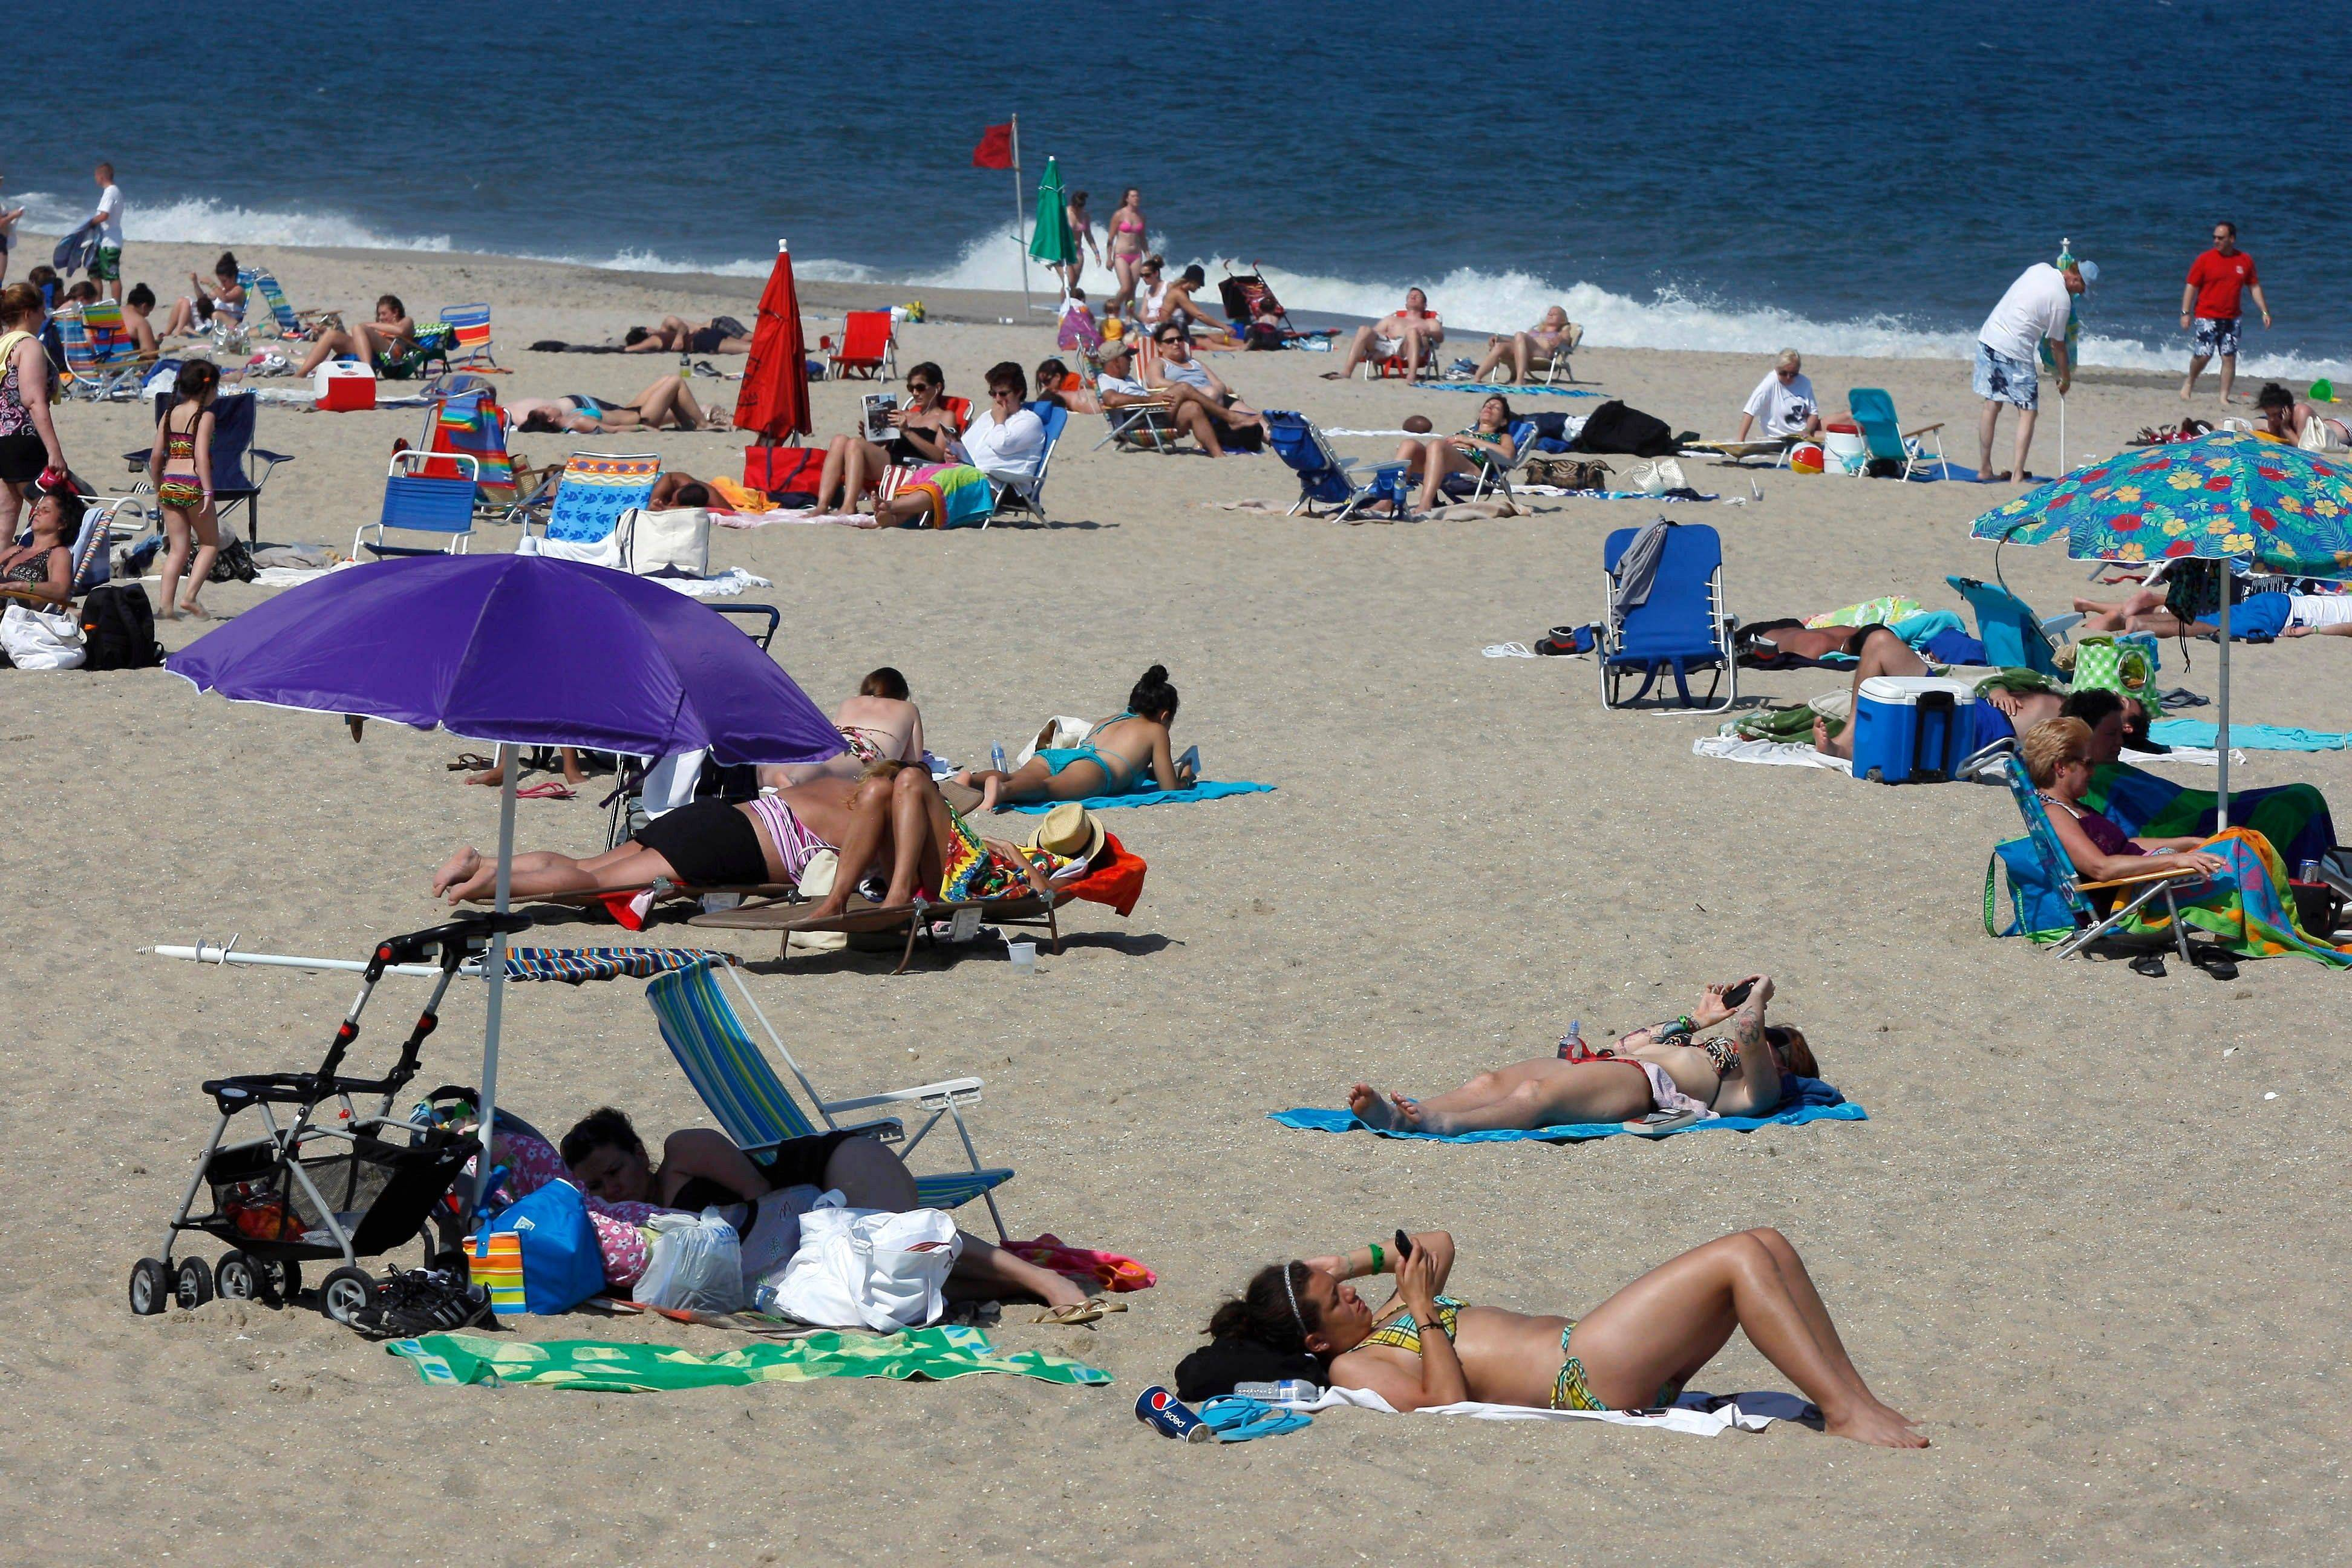 If you've hit the beach, chances are you've experienced an unfortunate rite of summer -- sunburn.